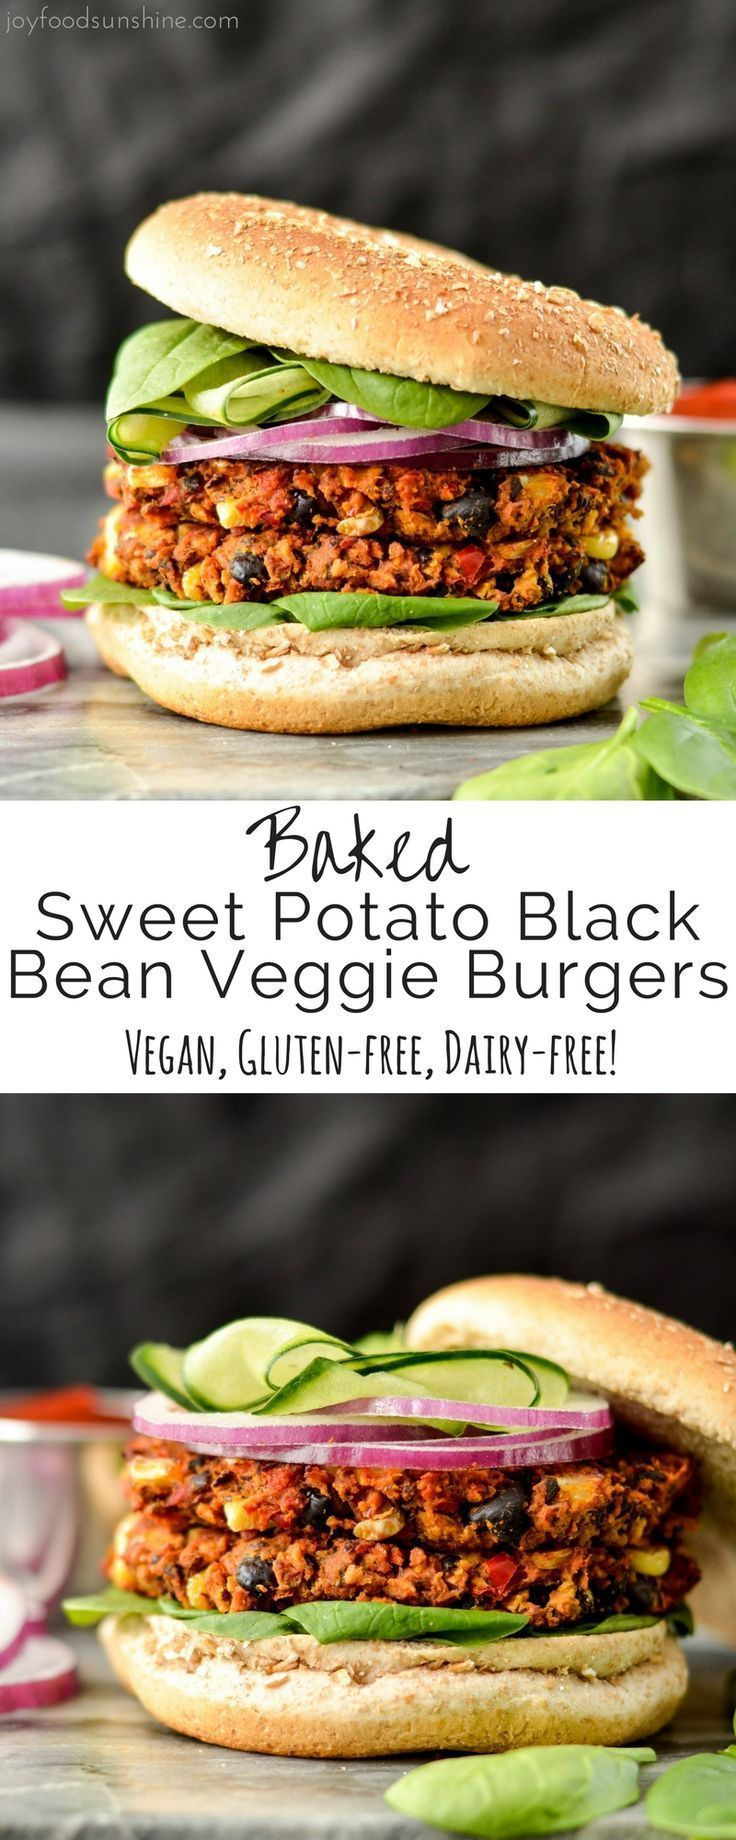 Baked Sweet Potato Black Bean Veggie Burgers are vegan, gluten-free and freezer-friendly!